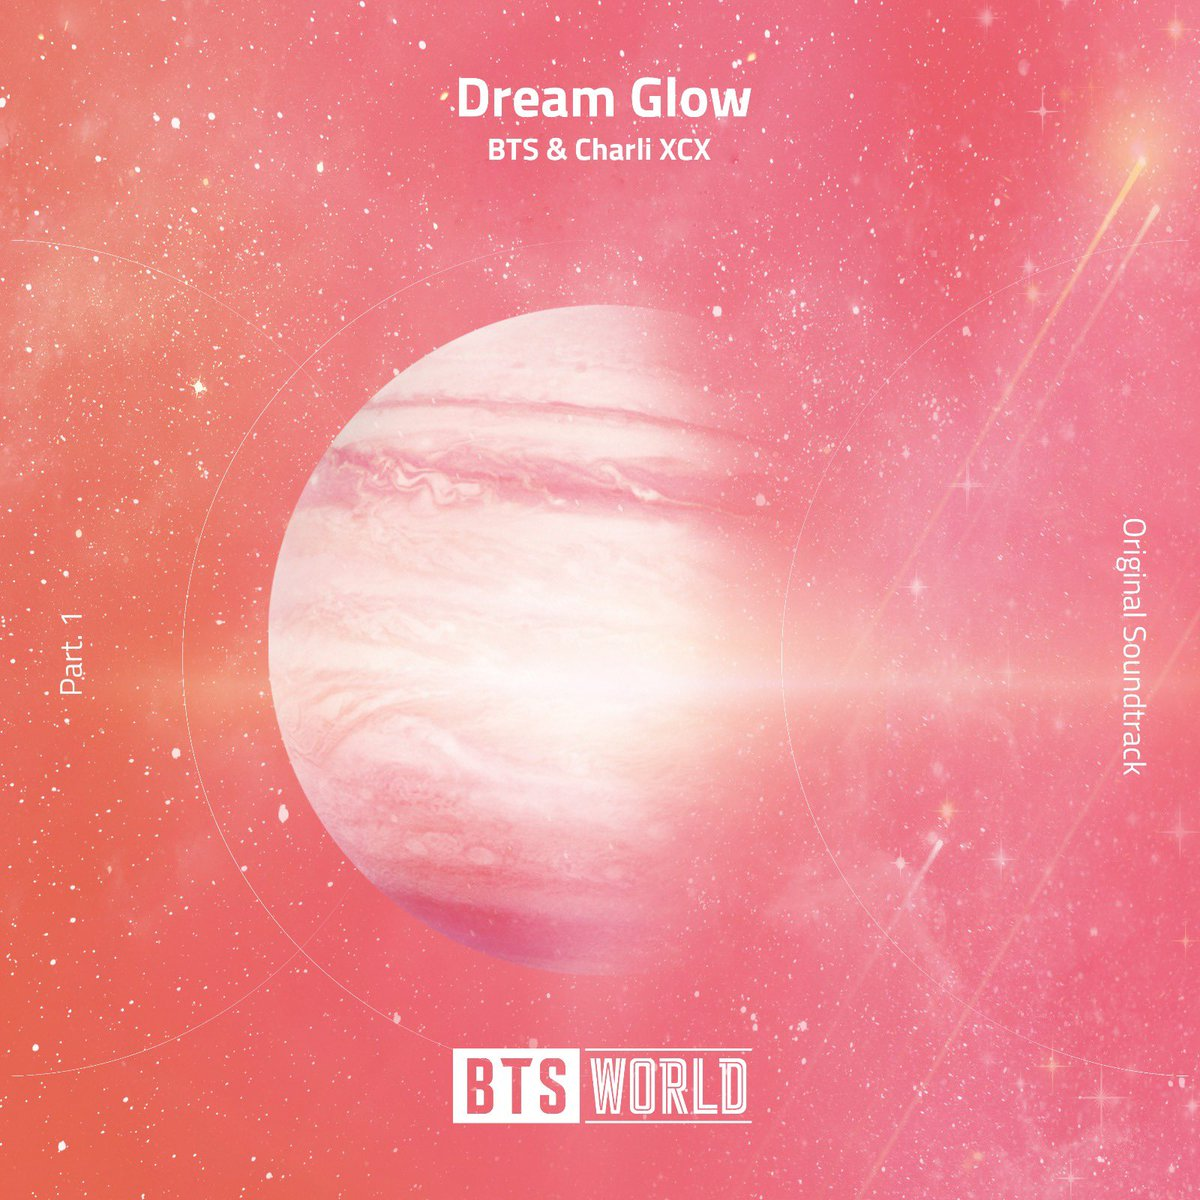 ✨OMG I MADE A SONG WITH @BTS_TWT AND NOW ITS OUT AND YOU CAN LISTEN TO IT AND AHHHHH I'M SO EXCITED!! ✨ http://apple.co/2wFBRp9